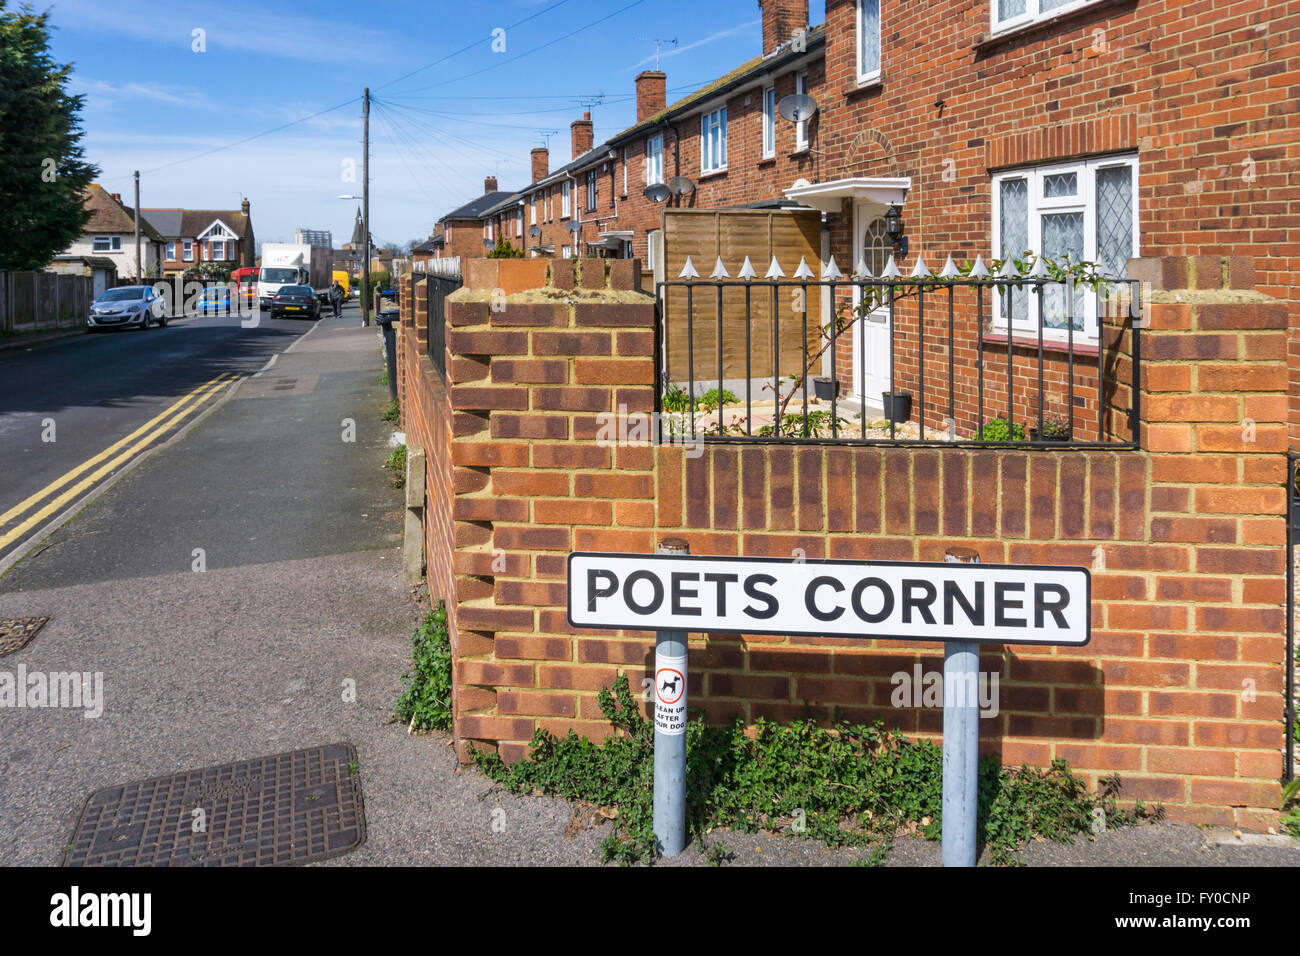 A sign for poets Corner in Margate, Kent. - Stock Image